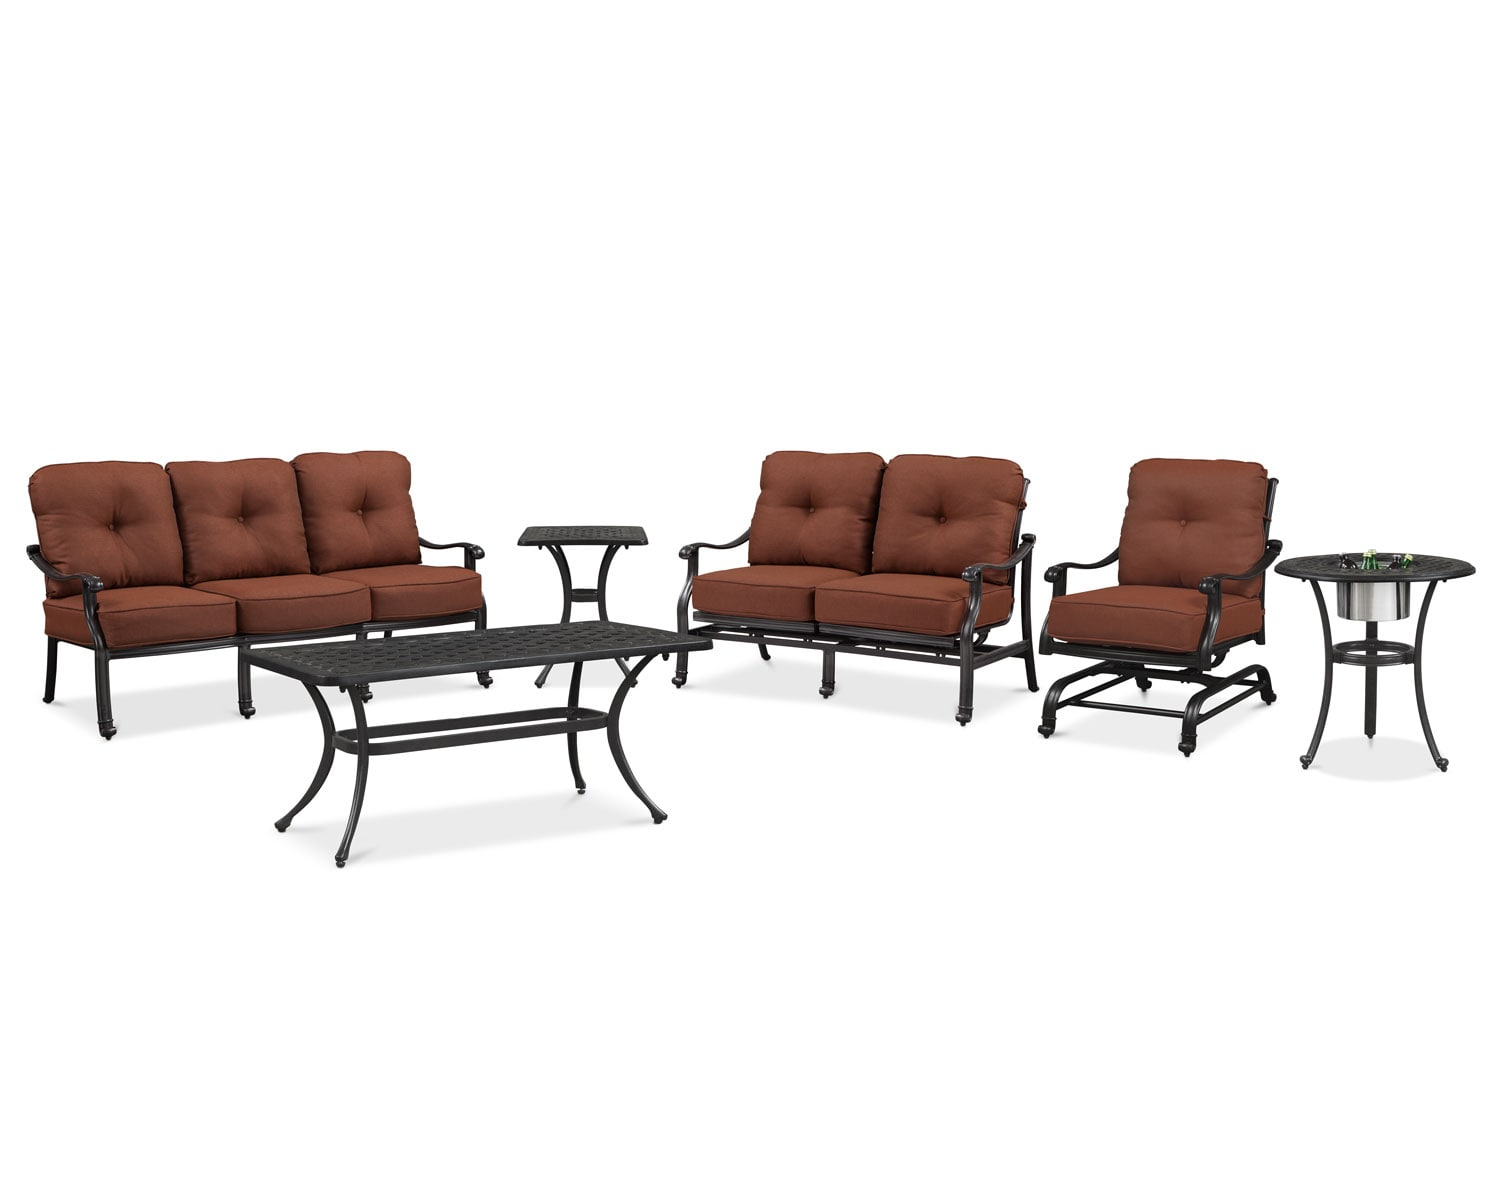 The Glades Outdoor Living Room Collection